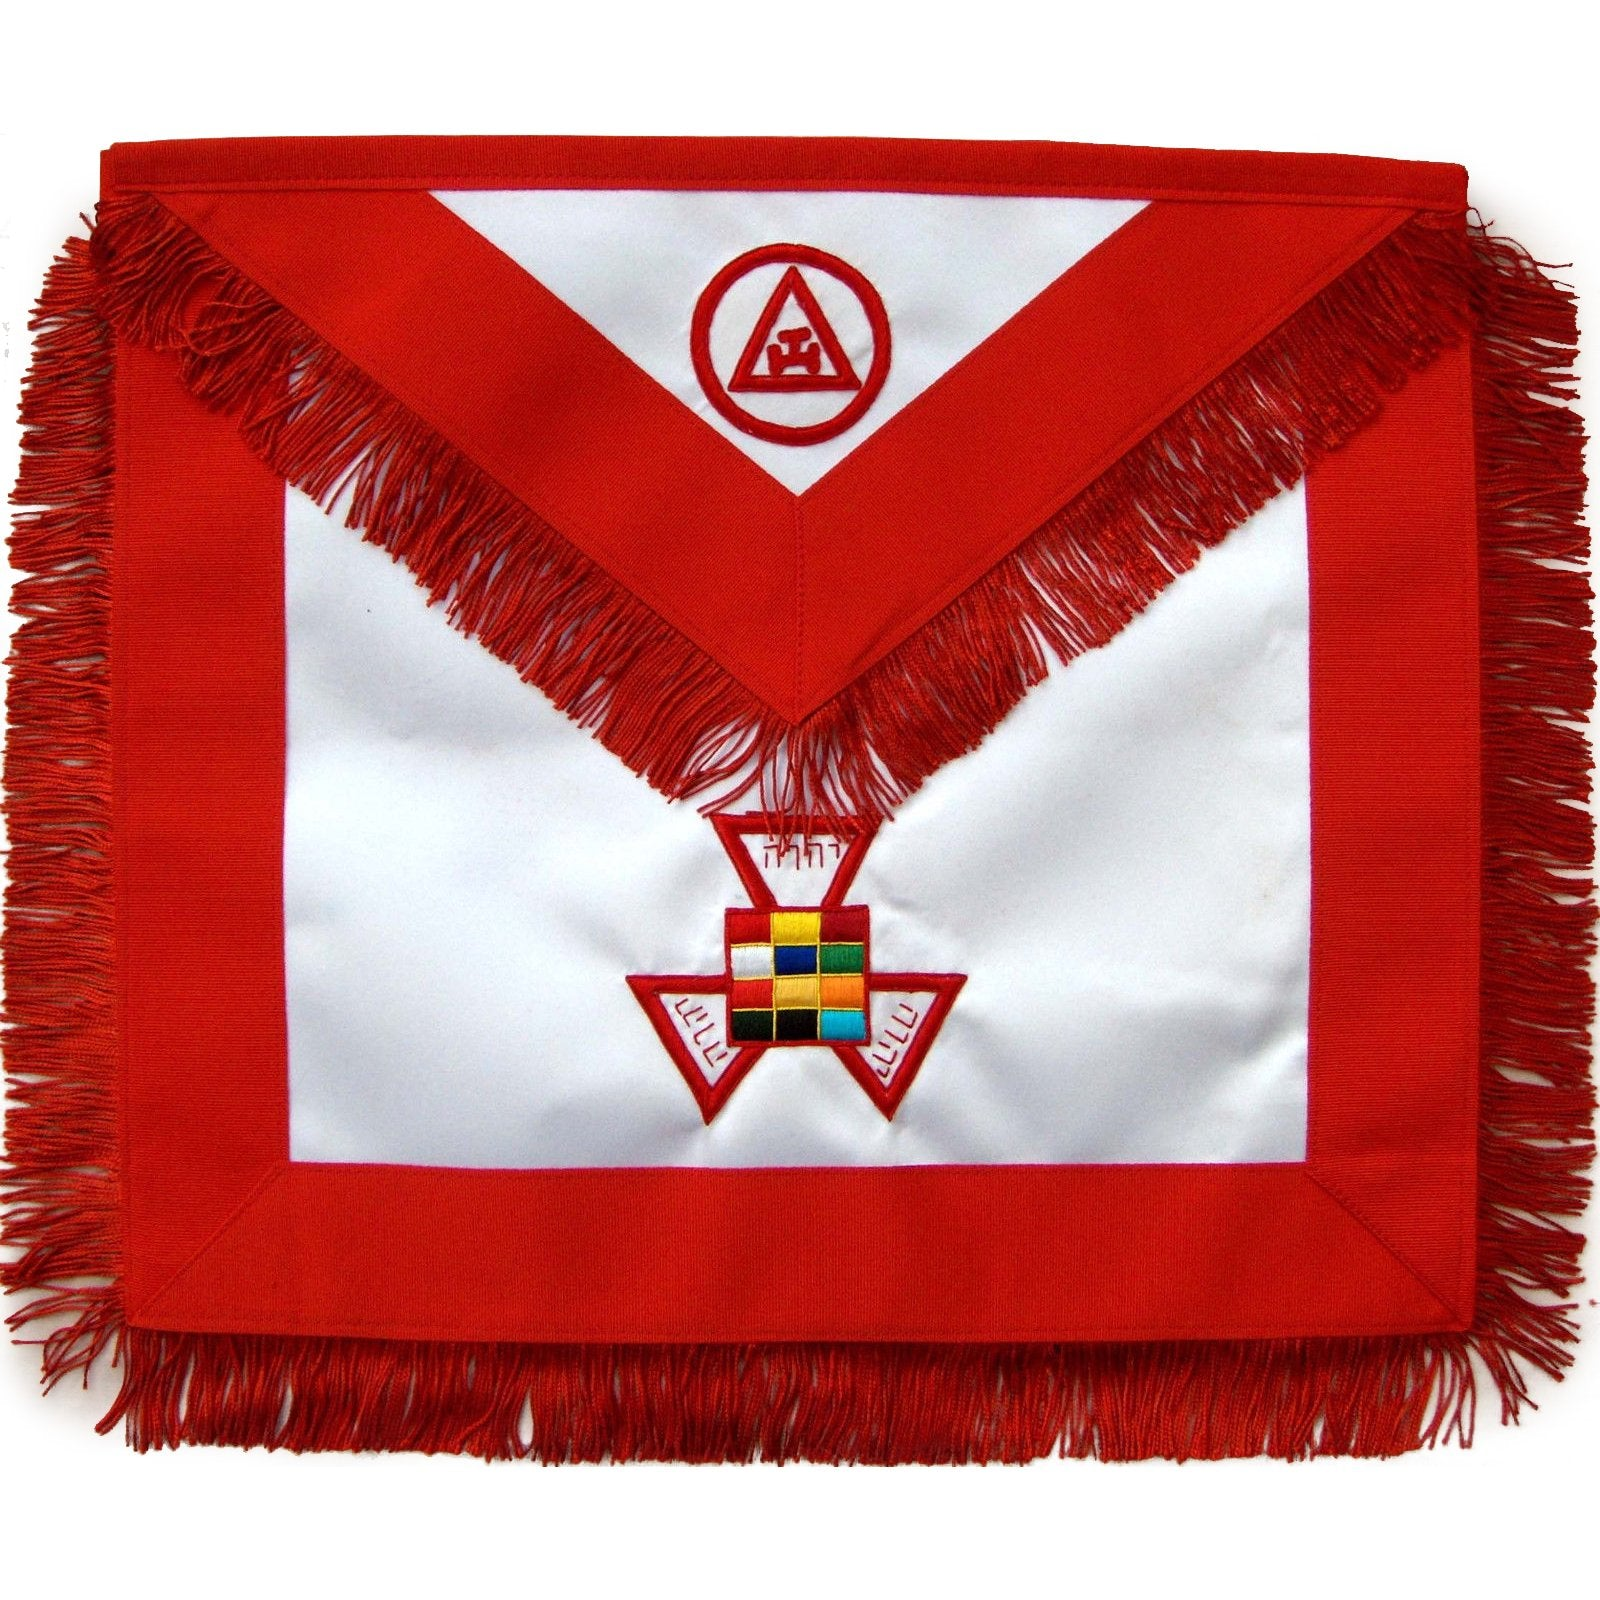 Masonic Royal Arch Past High Priest PHP Apron Hand Embroidered - Bricks Masons